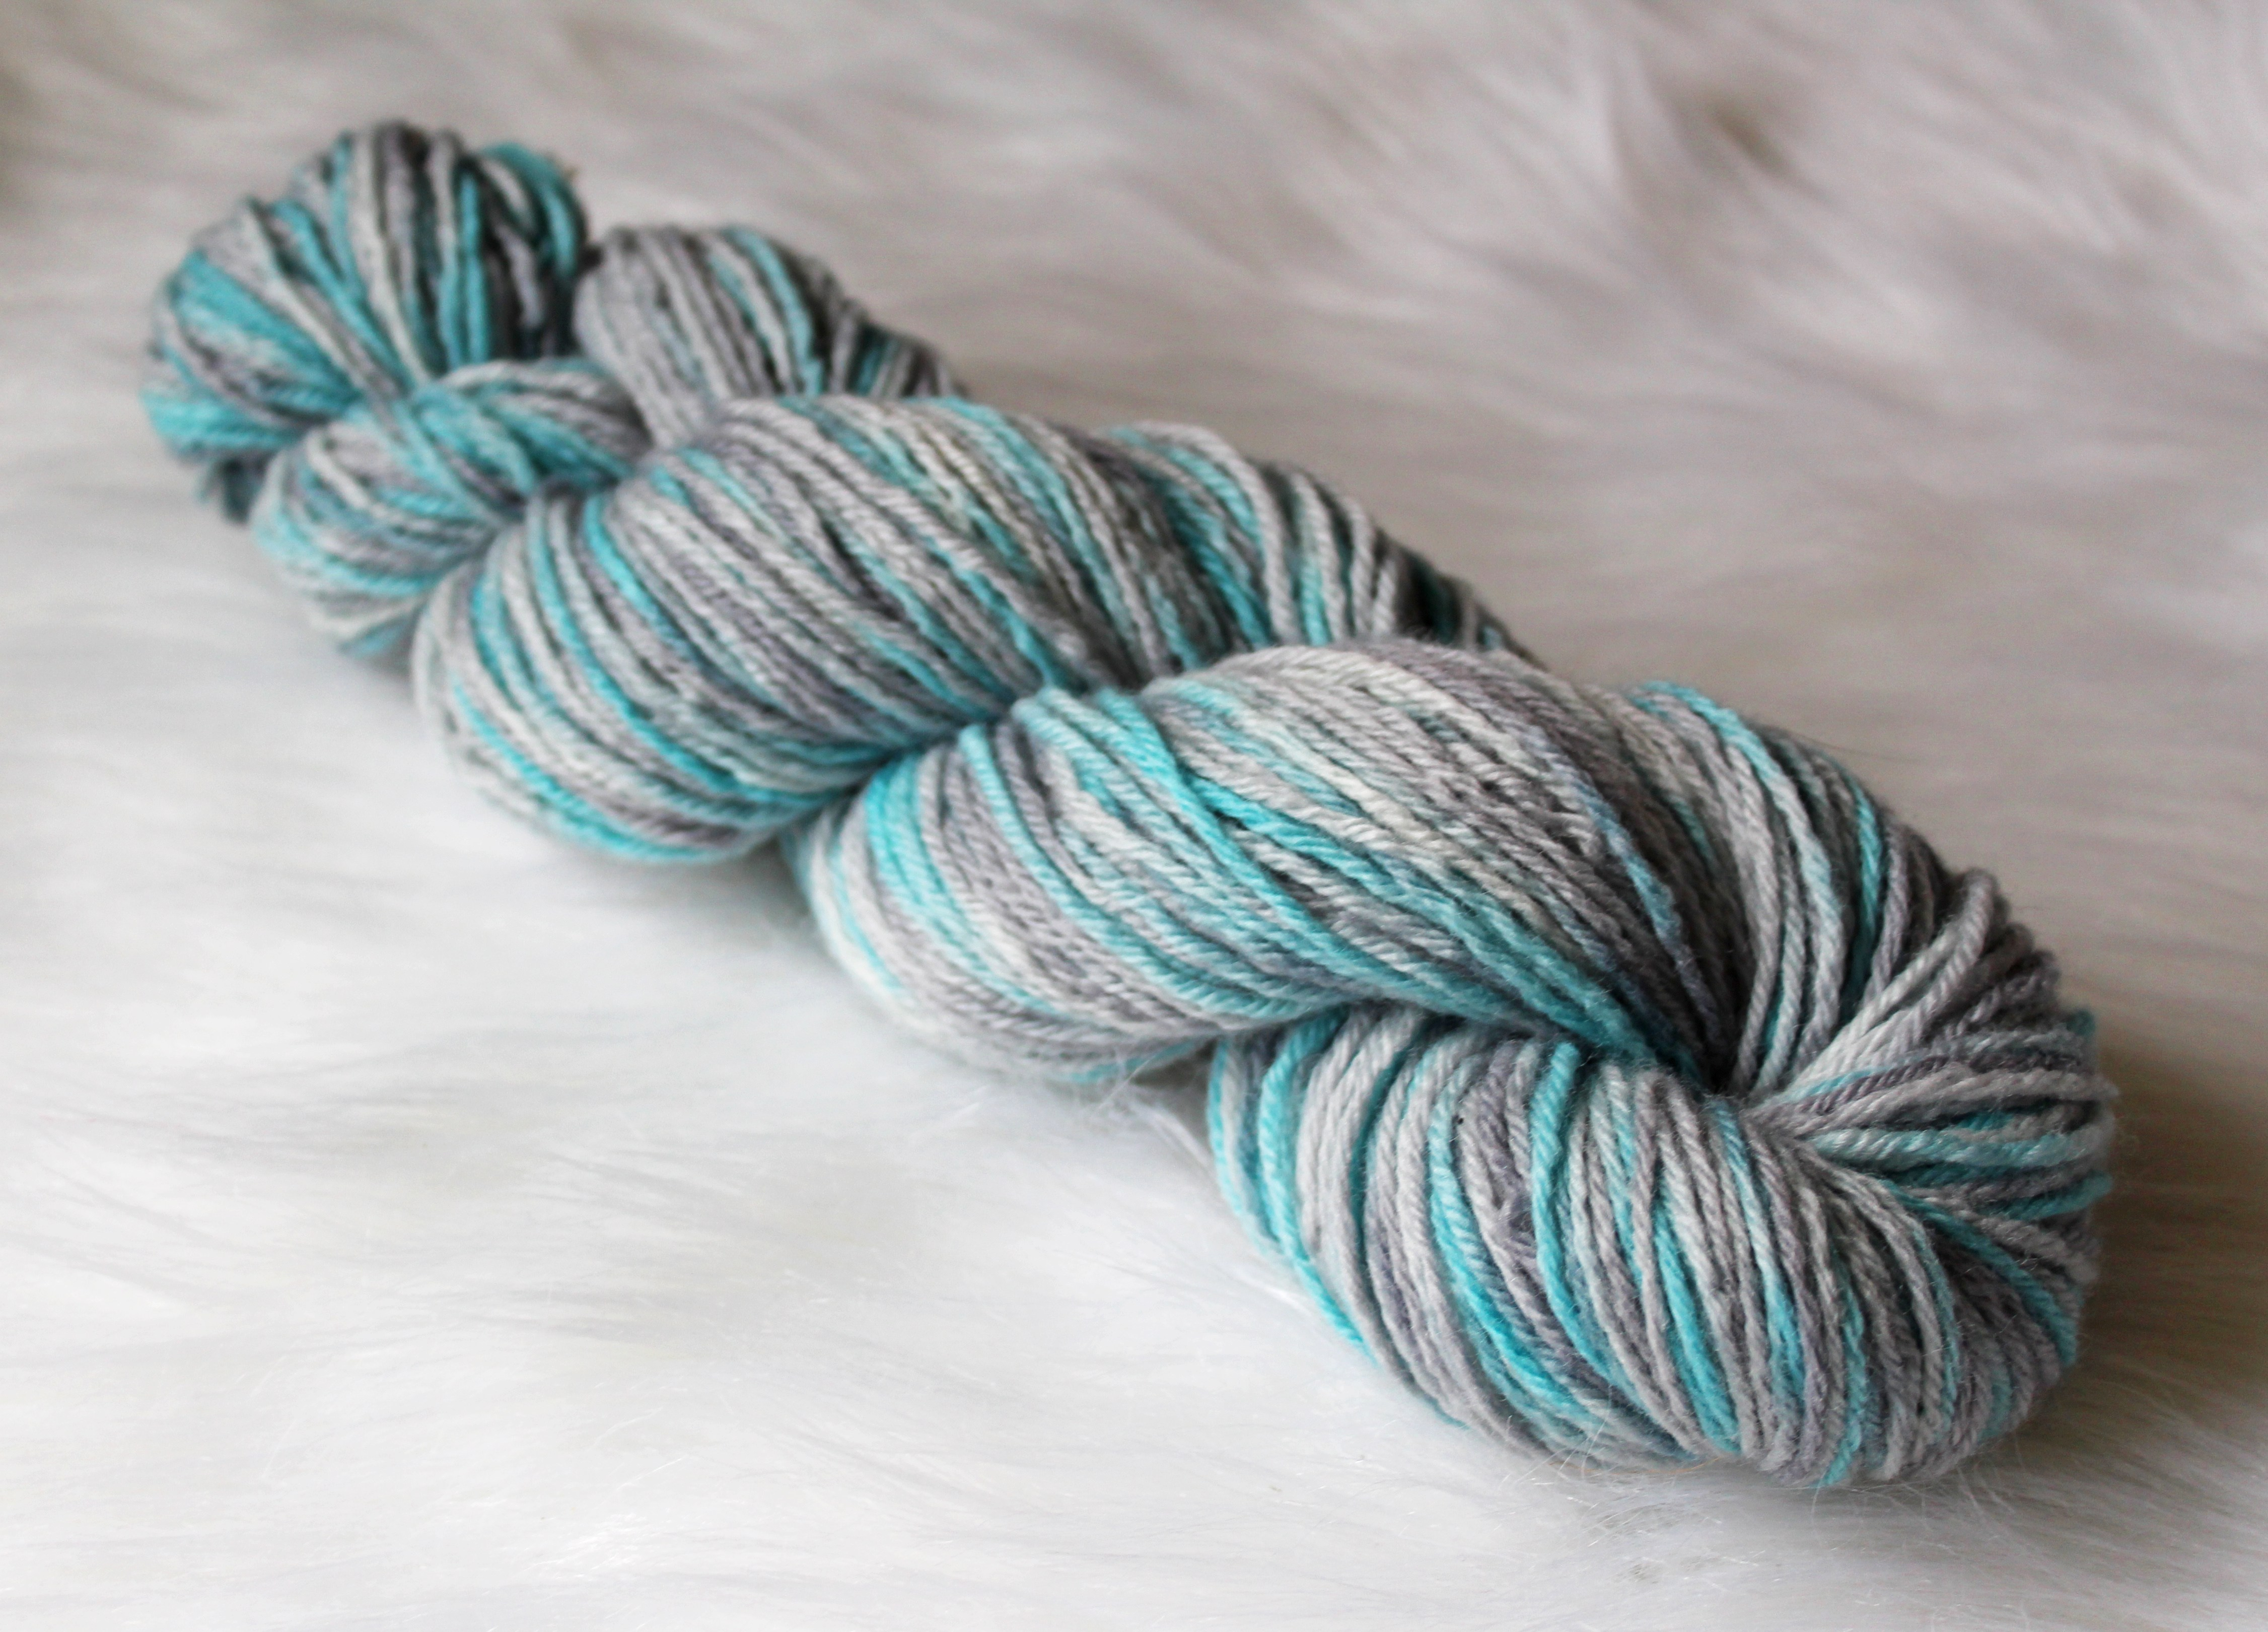 recommended dyers - Sky, a colorway of Springtime in Paris (image ©Unicorn Yarn Co.)